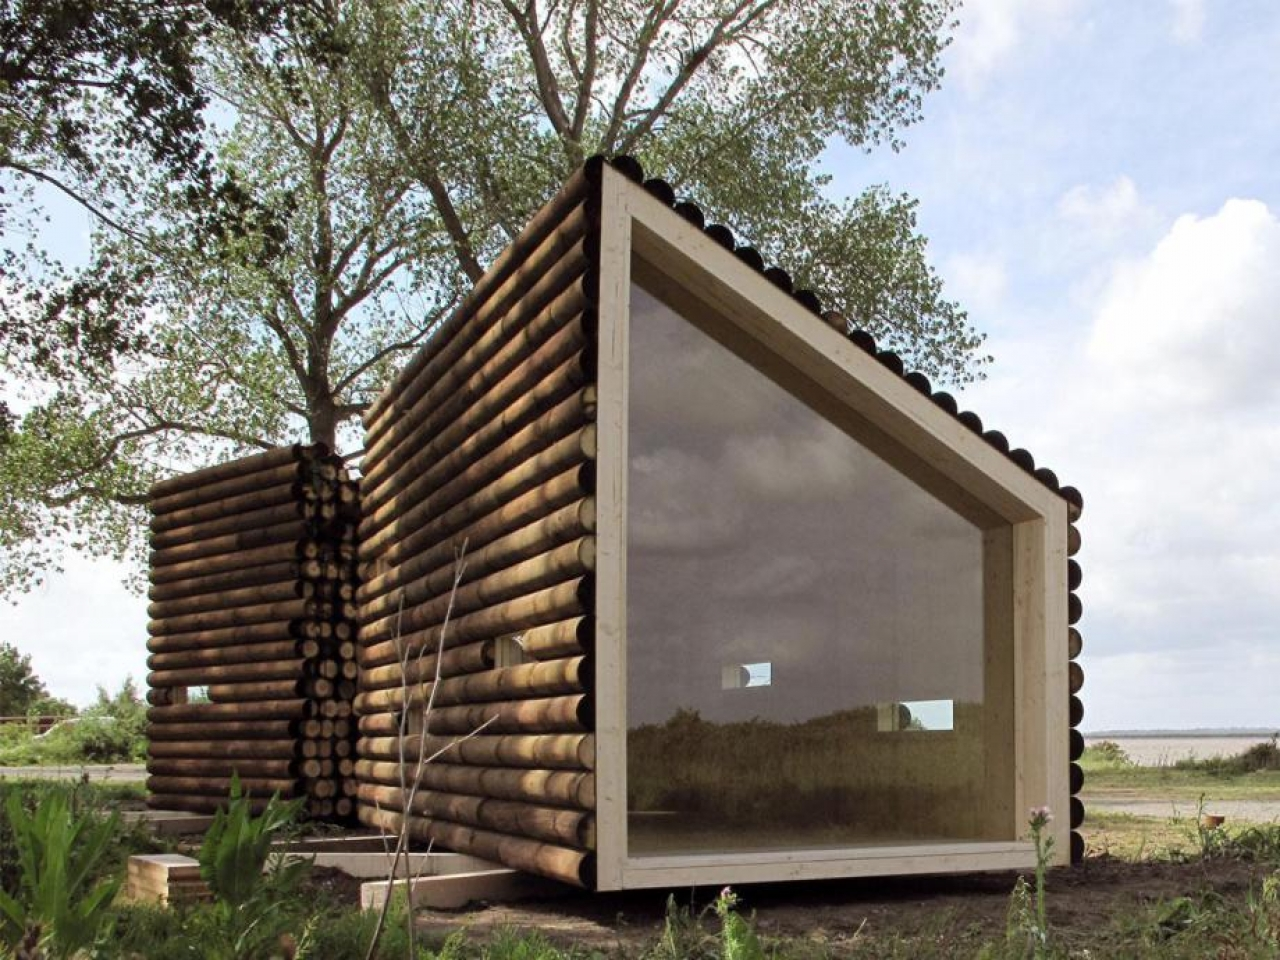 Tiny Cottage House Plans Diy Small Cabin Plans Diy Cabin: Beautiful Log Cabins Modern Log Cabin, Diy Small Home